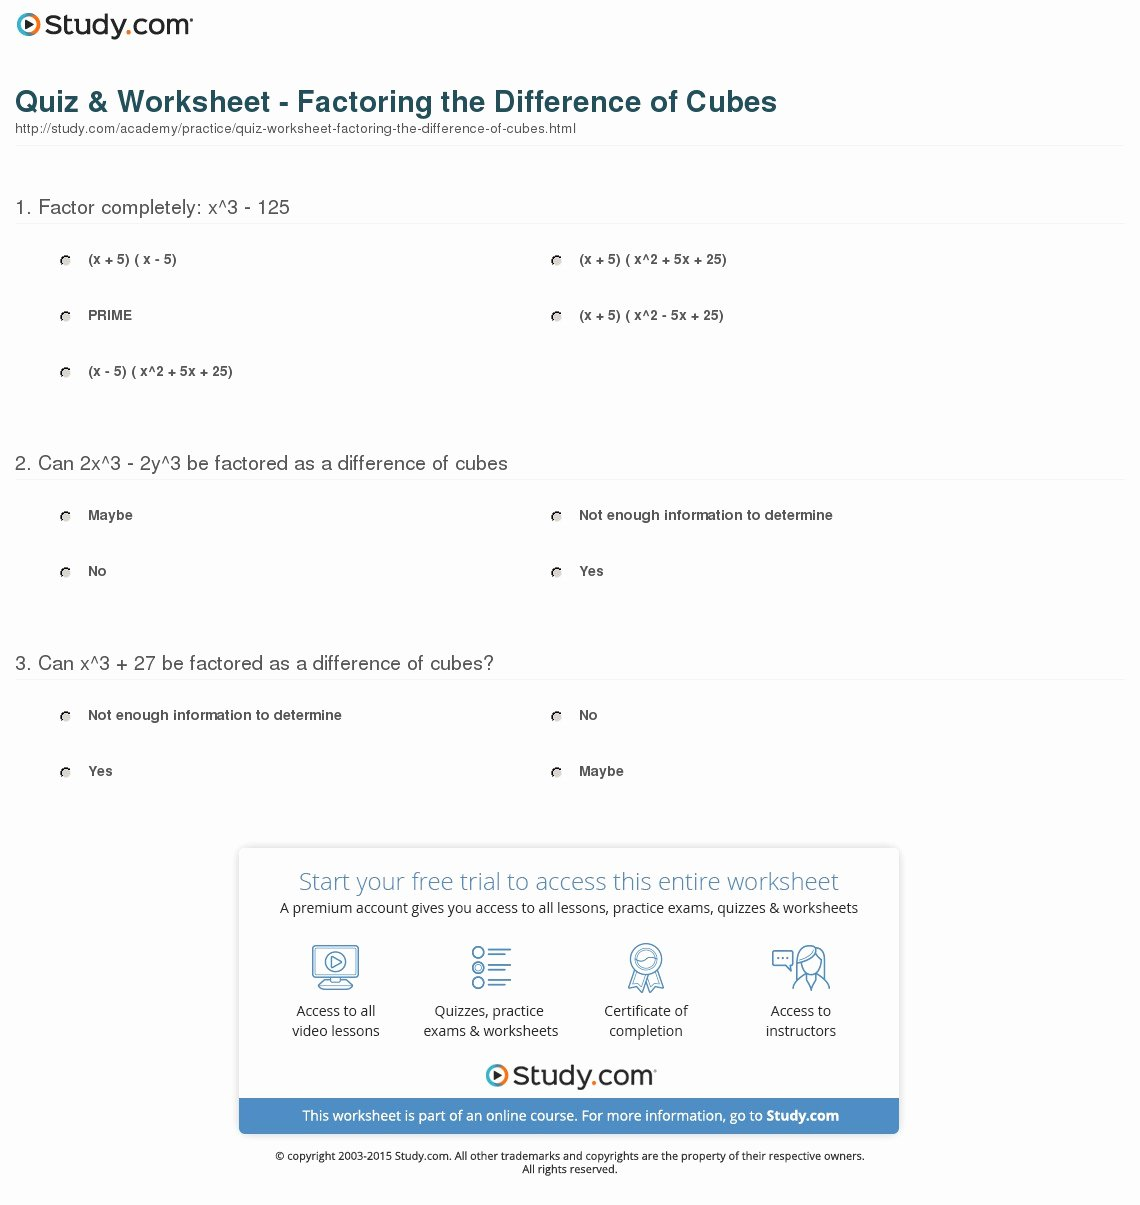 Factoring Practice Worksheet Answers Inspirational Quiz & Worksheet Factoring the Difference Of Cubes